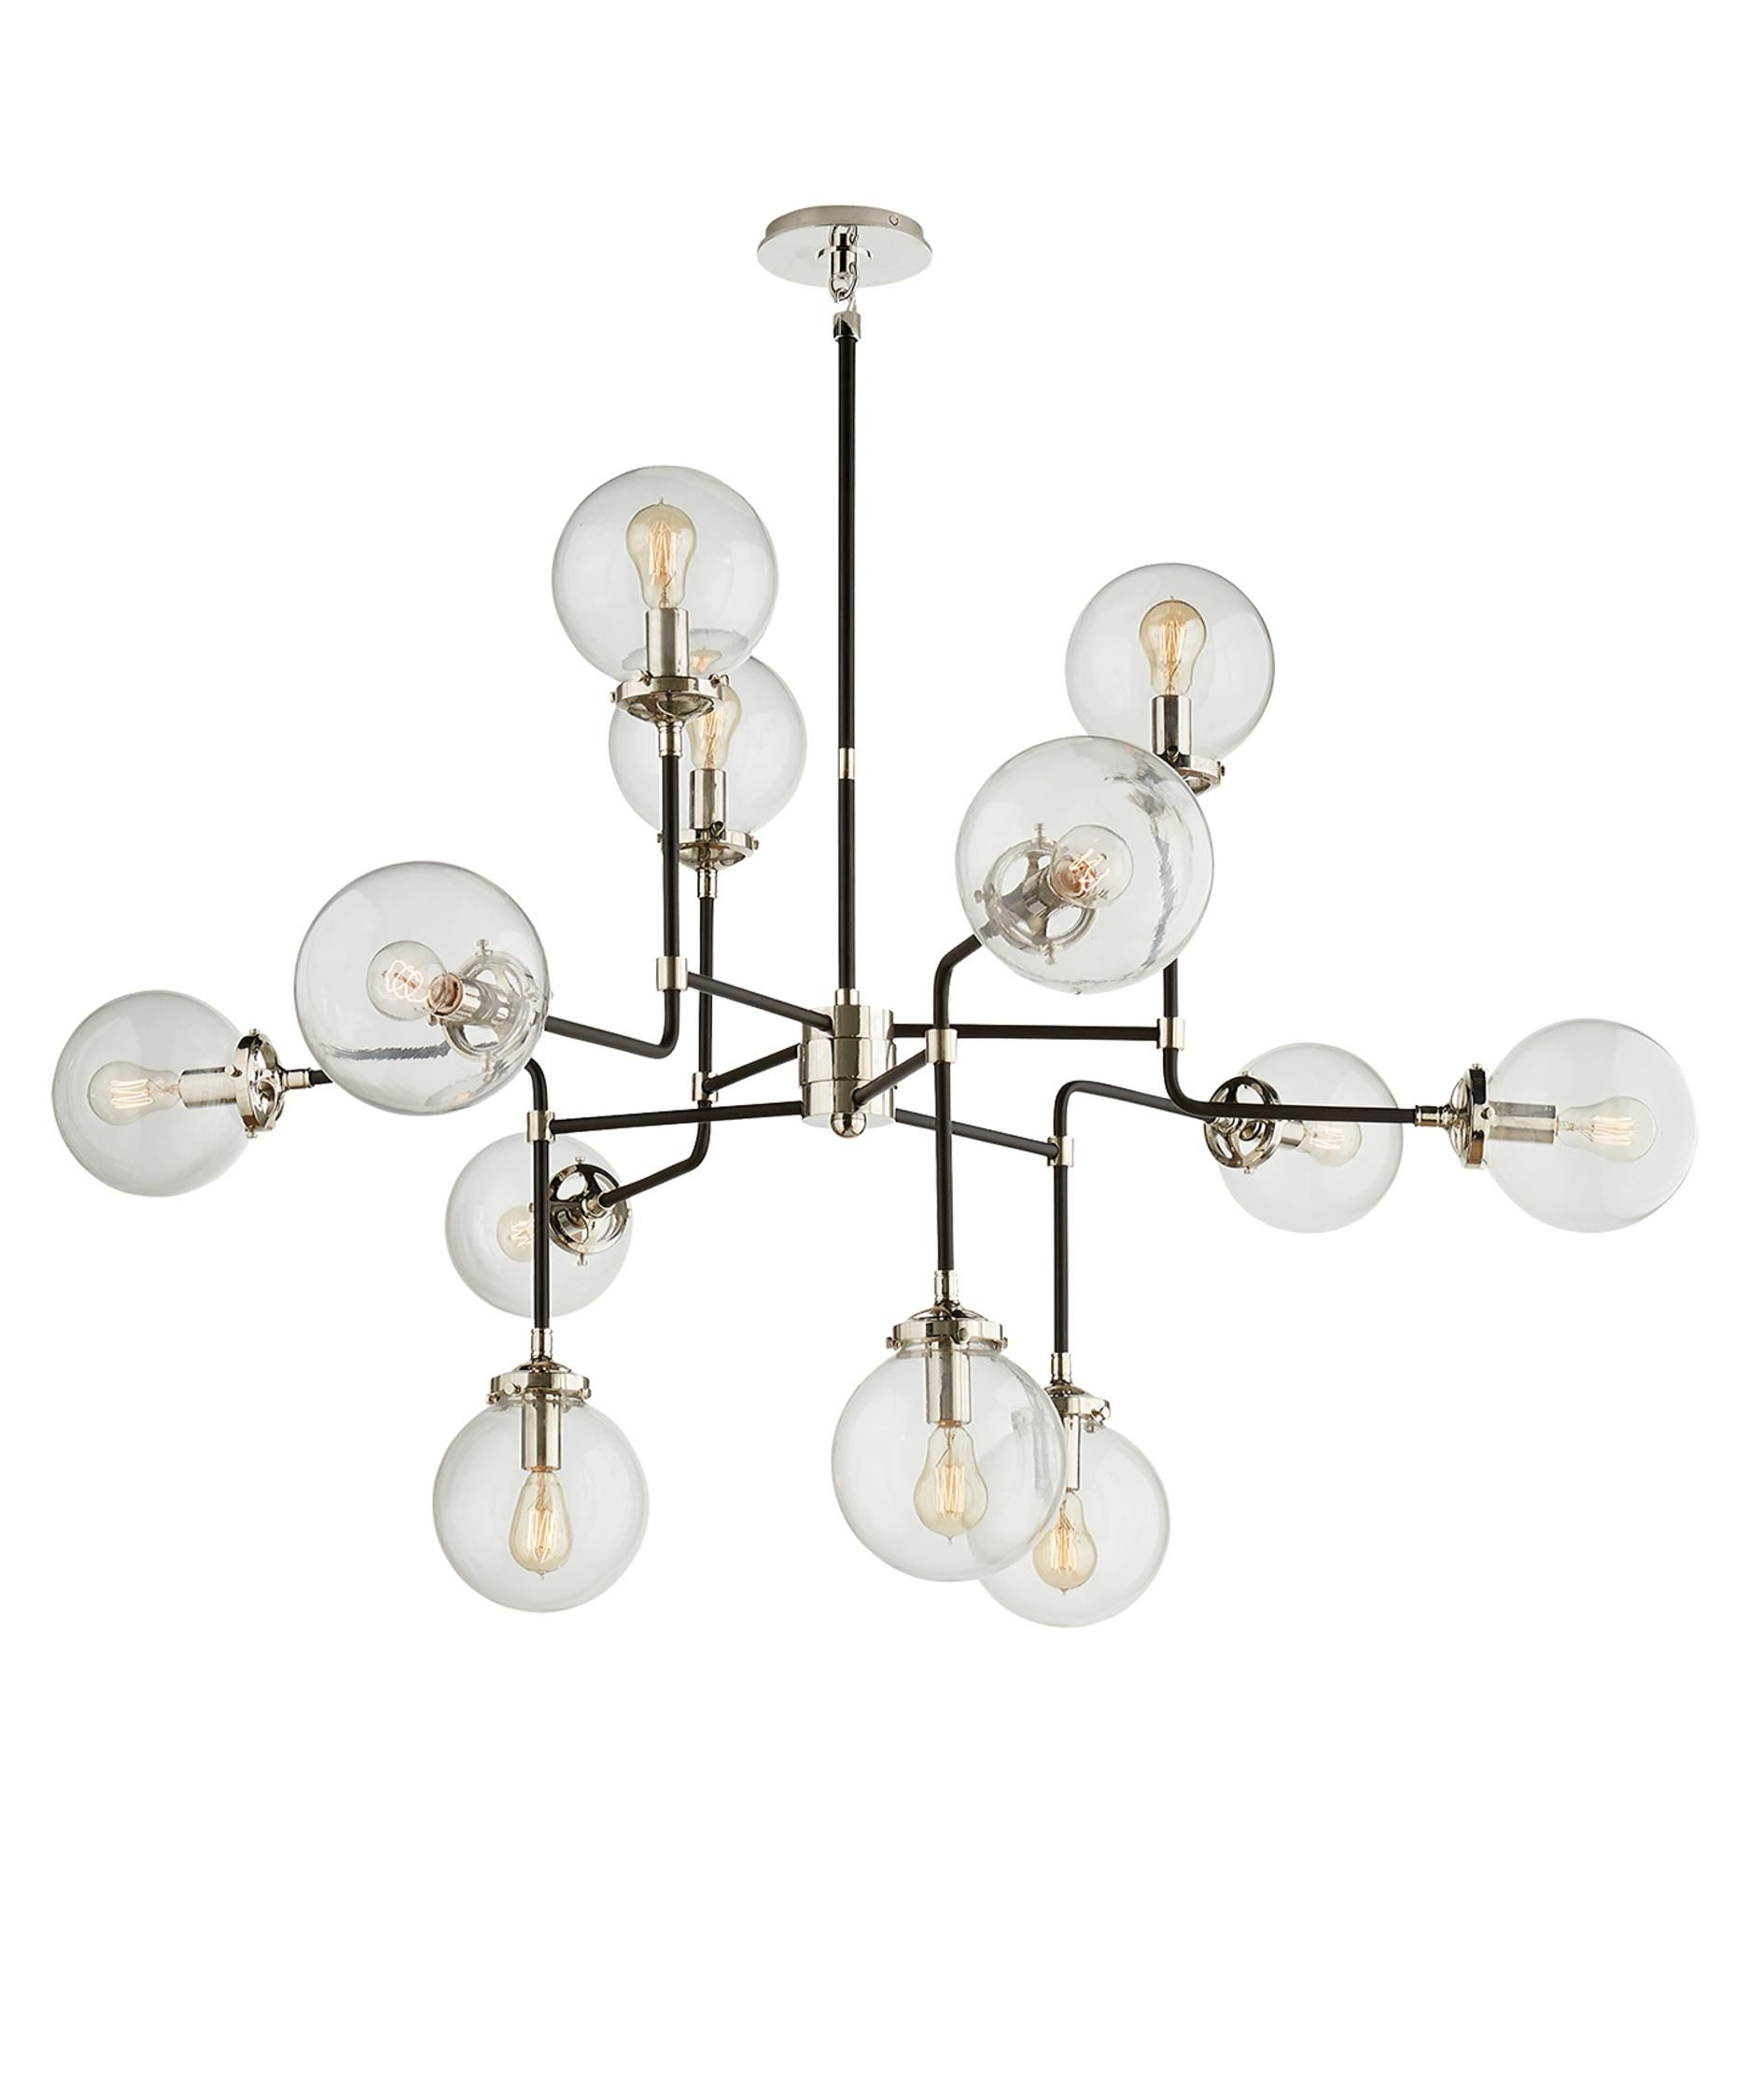 Visual comfort s5022 bistro 47 inch chandelier great lighting visual comfort s5022 bistro 47 inch chandelier arubaitofo Image collections